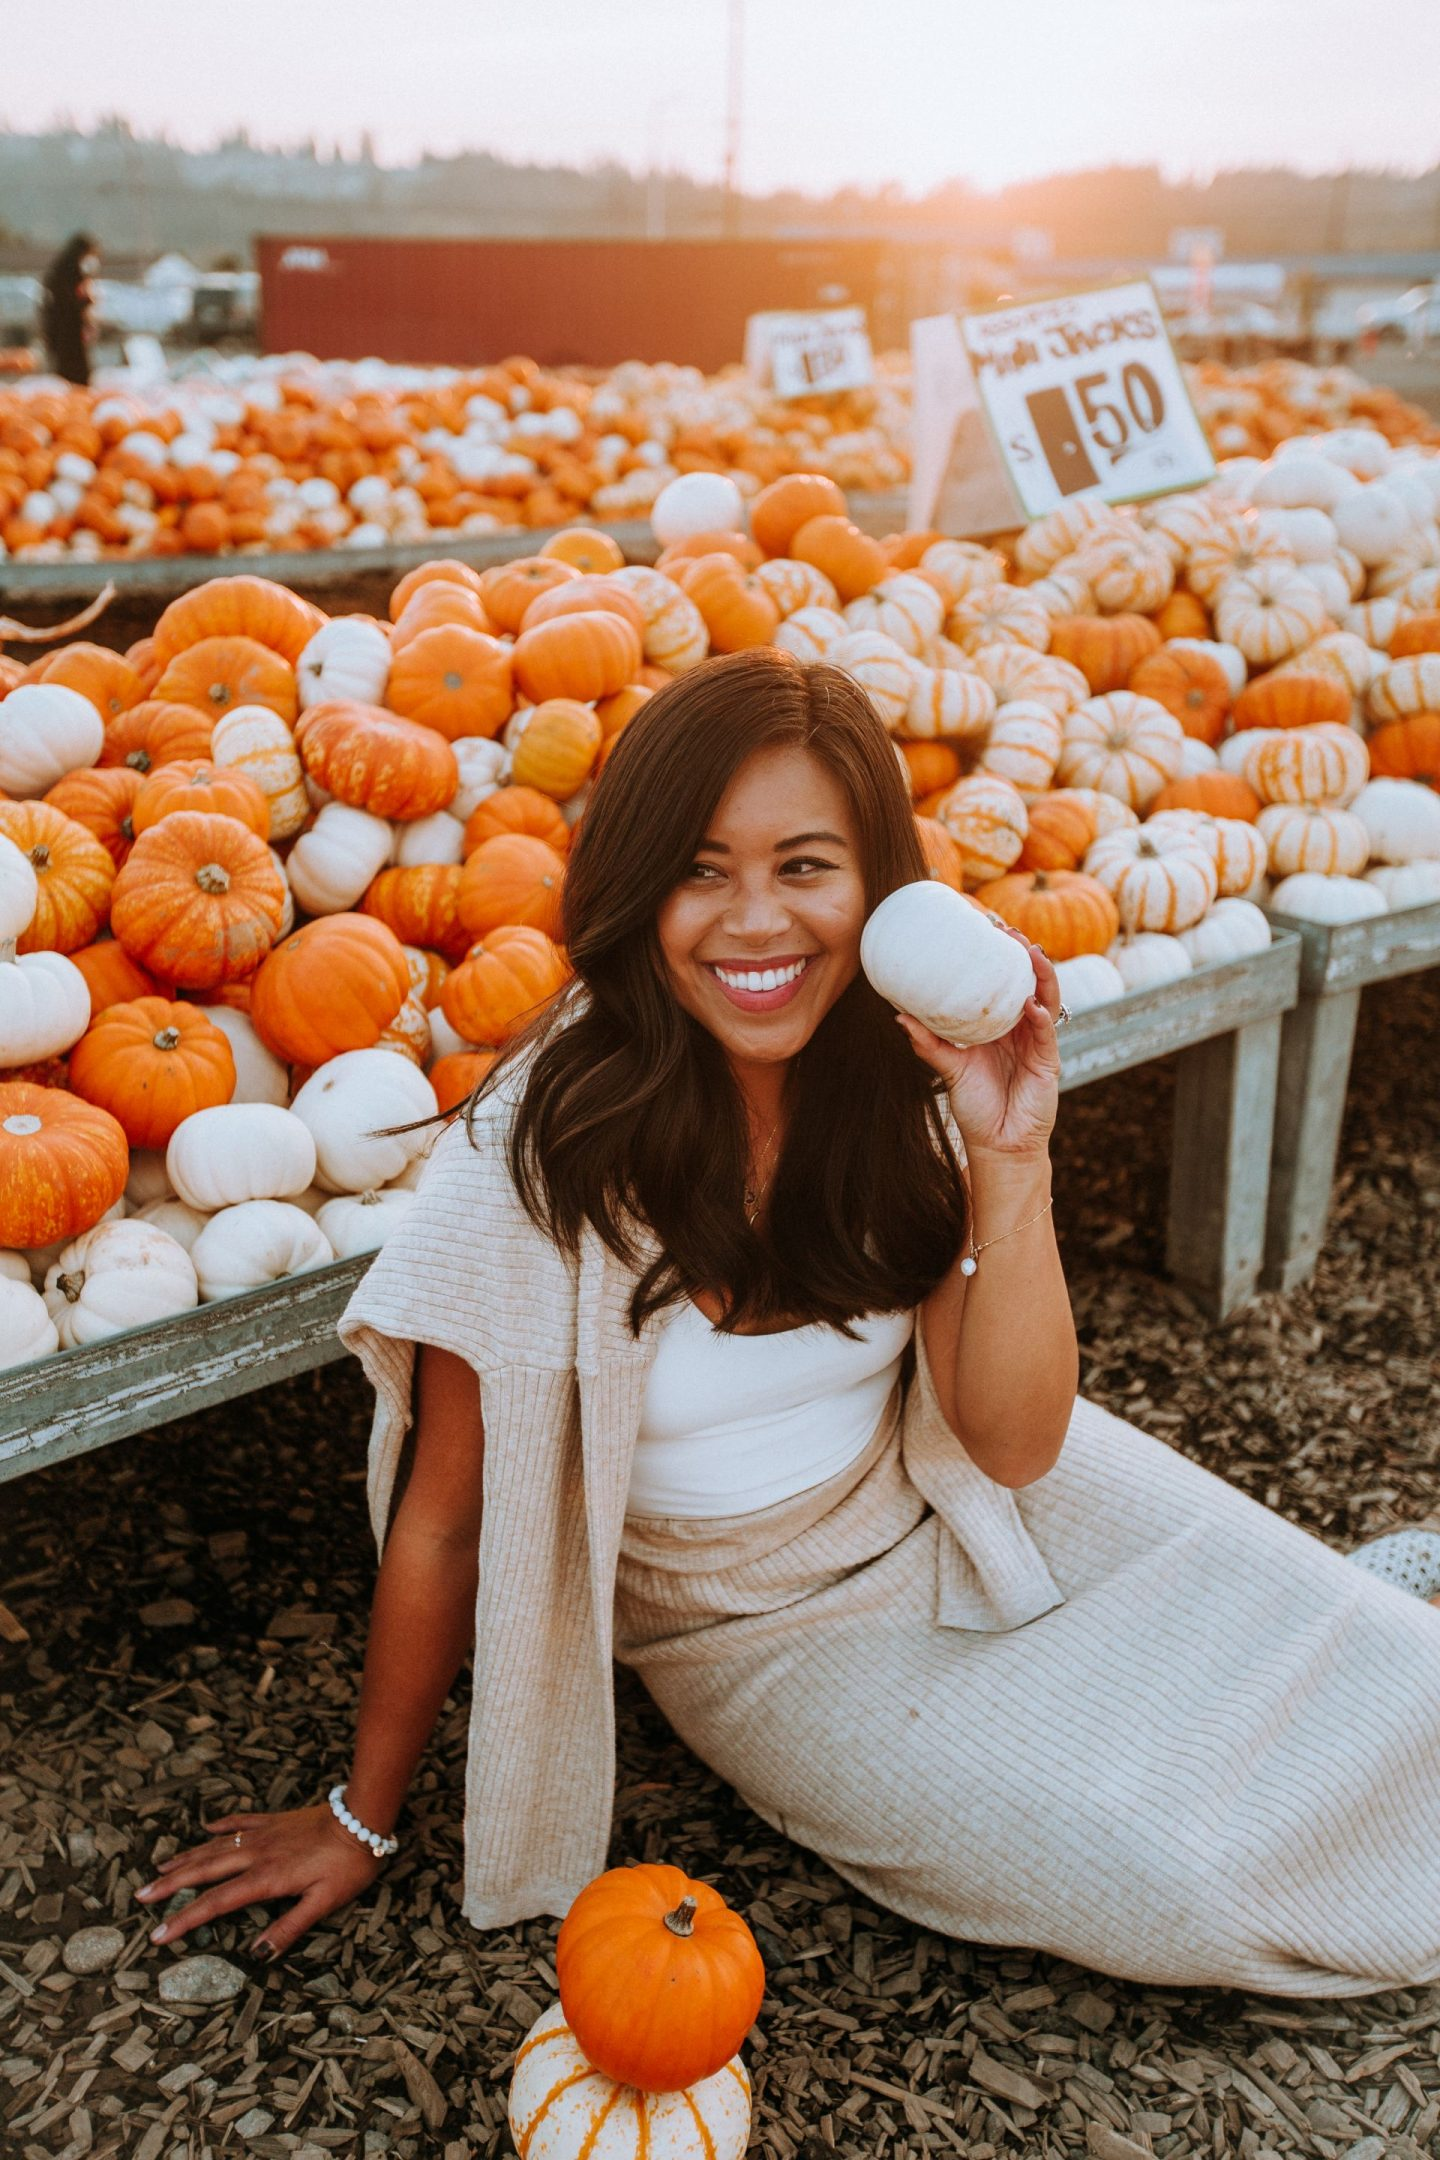 Pumpkin patch outfit idea - matching knit sets